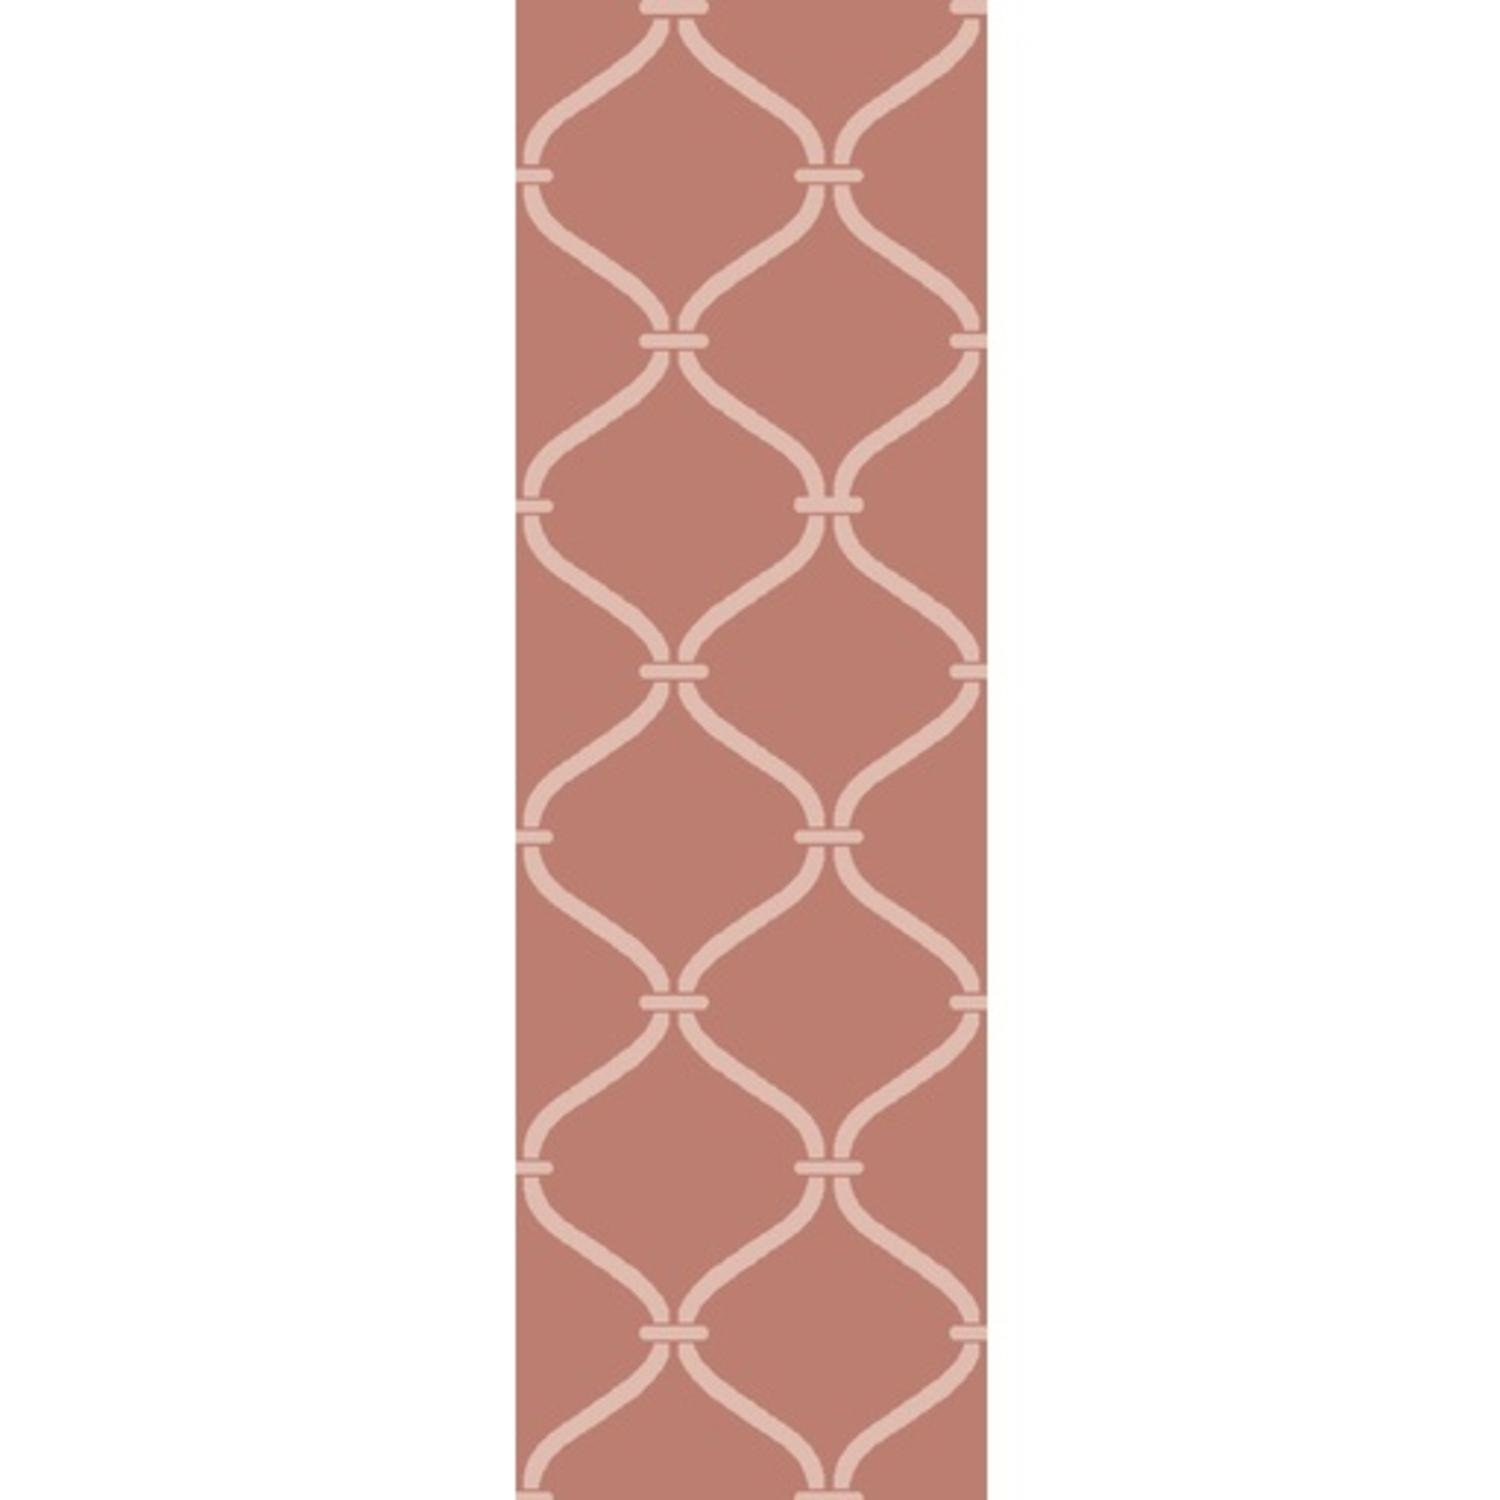 2.5' x 8' Egyptian Windows Faded Coral and Ivory White Area Throw Rug Runner